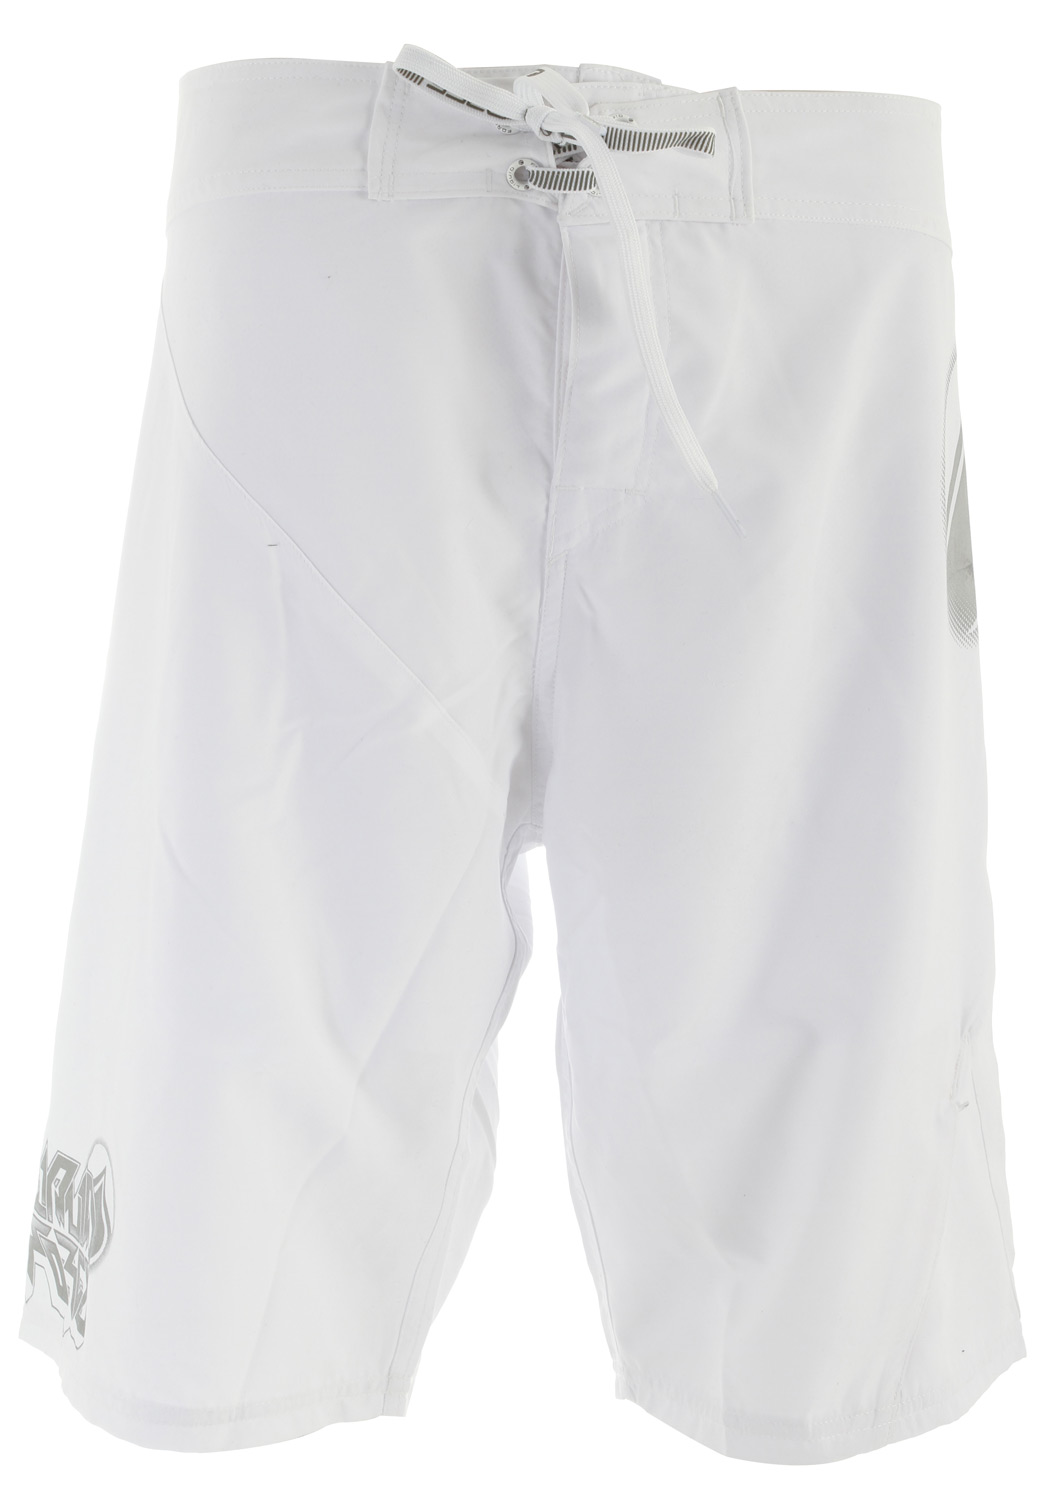 "Surf Key Features of the Liquid Force White House Boardshorts: Quick Drying 4-way Liquid Stretch 21"" Outseam Velcro Tab with Lycra Fly Quick Drying Coating No Slip Print string tie White color way has inside liner - $48.95"